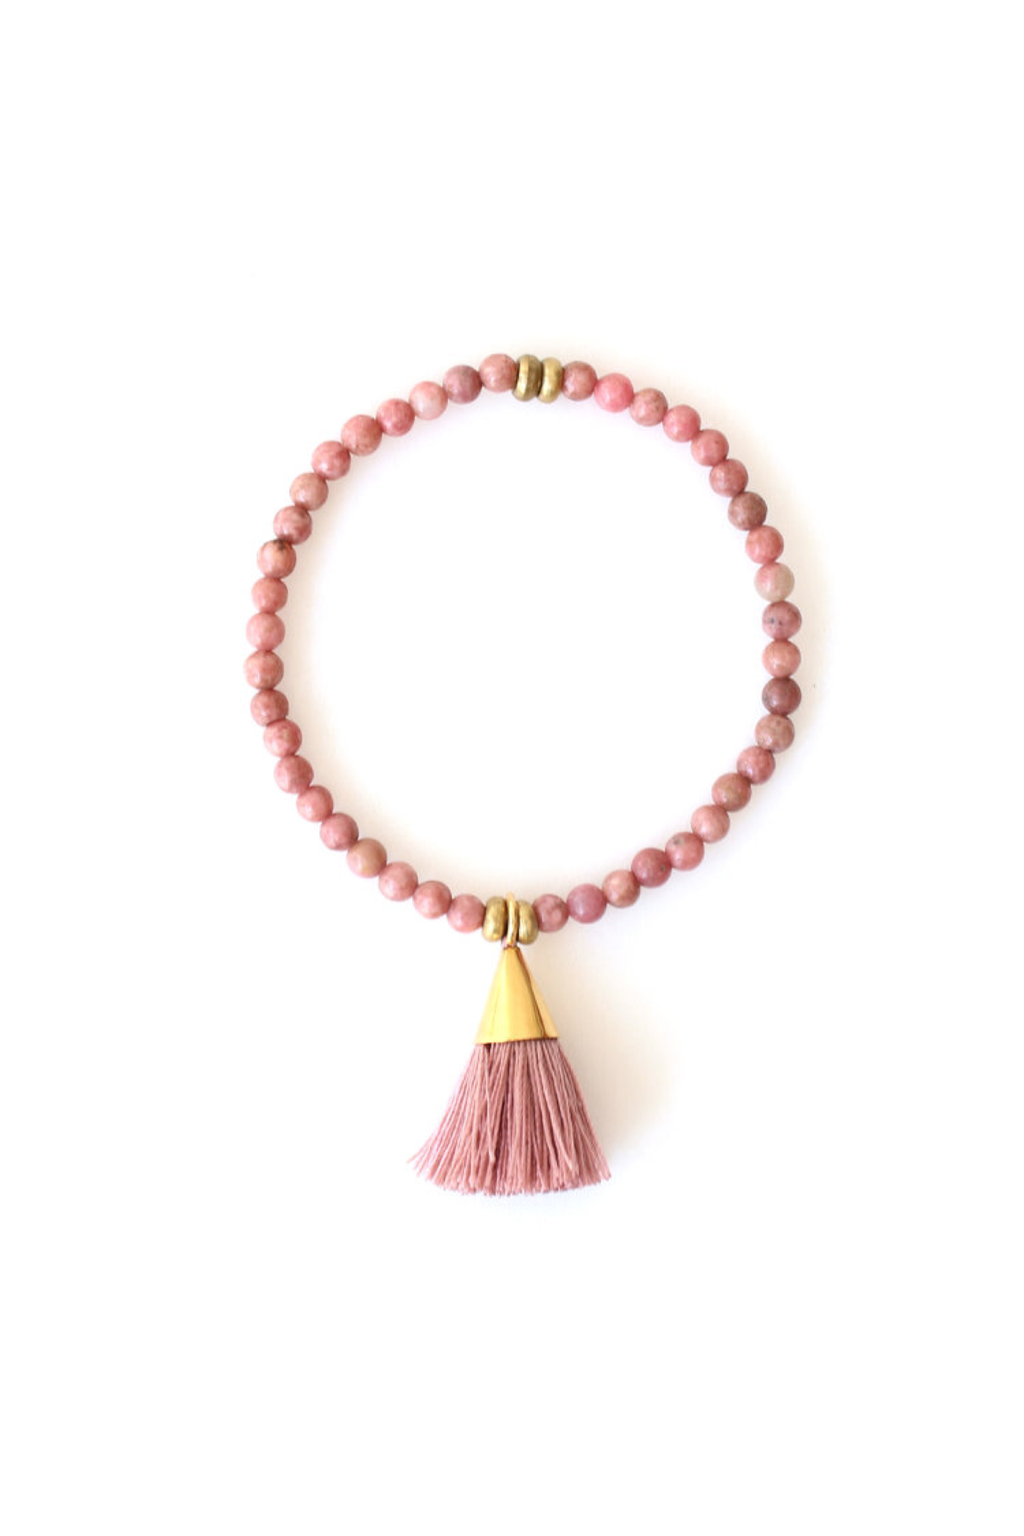 Blush x 2 Tassel Bracelet - ROSE MADE SHOP